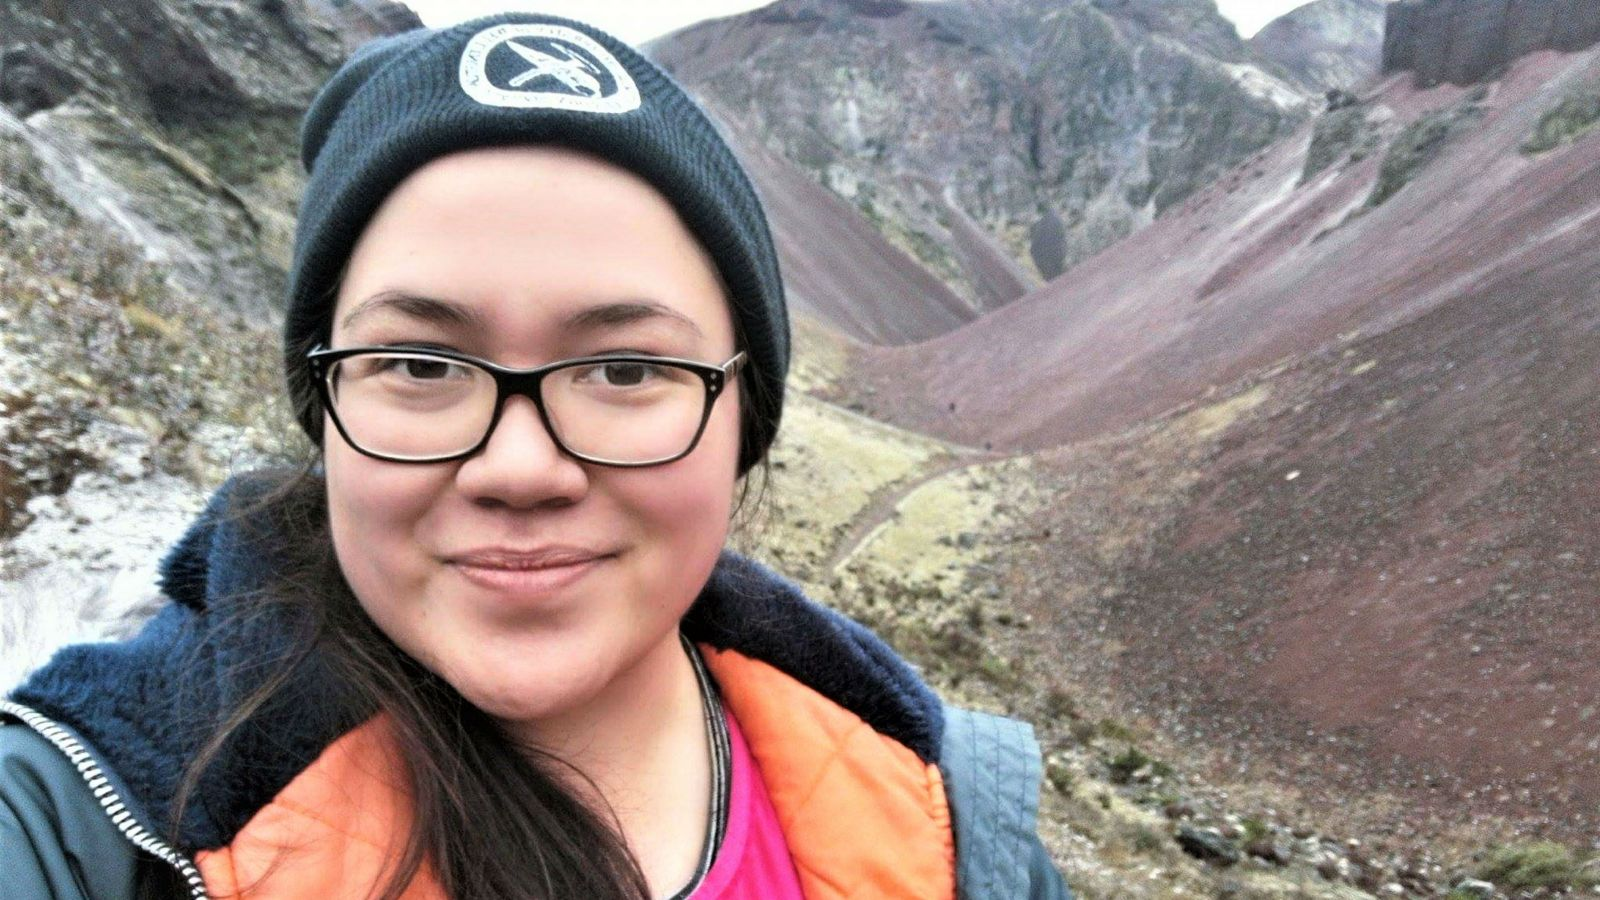 Raiatea, wearing a coat and beanie stands in front of a mountain range.